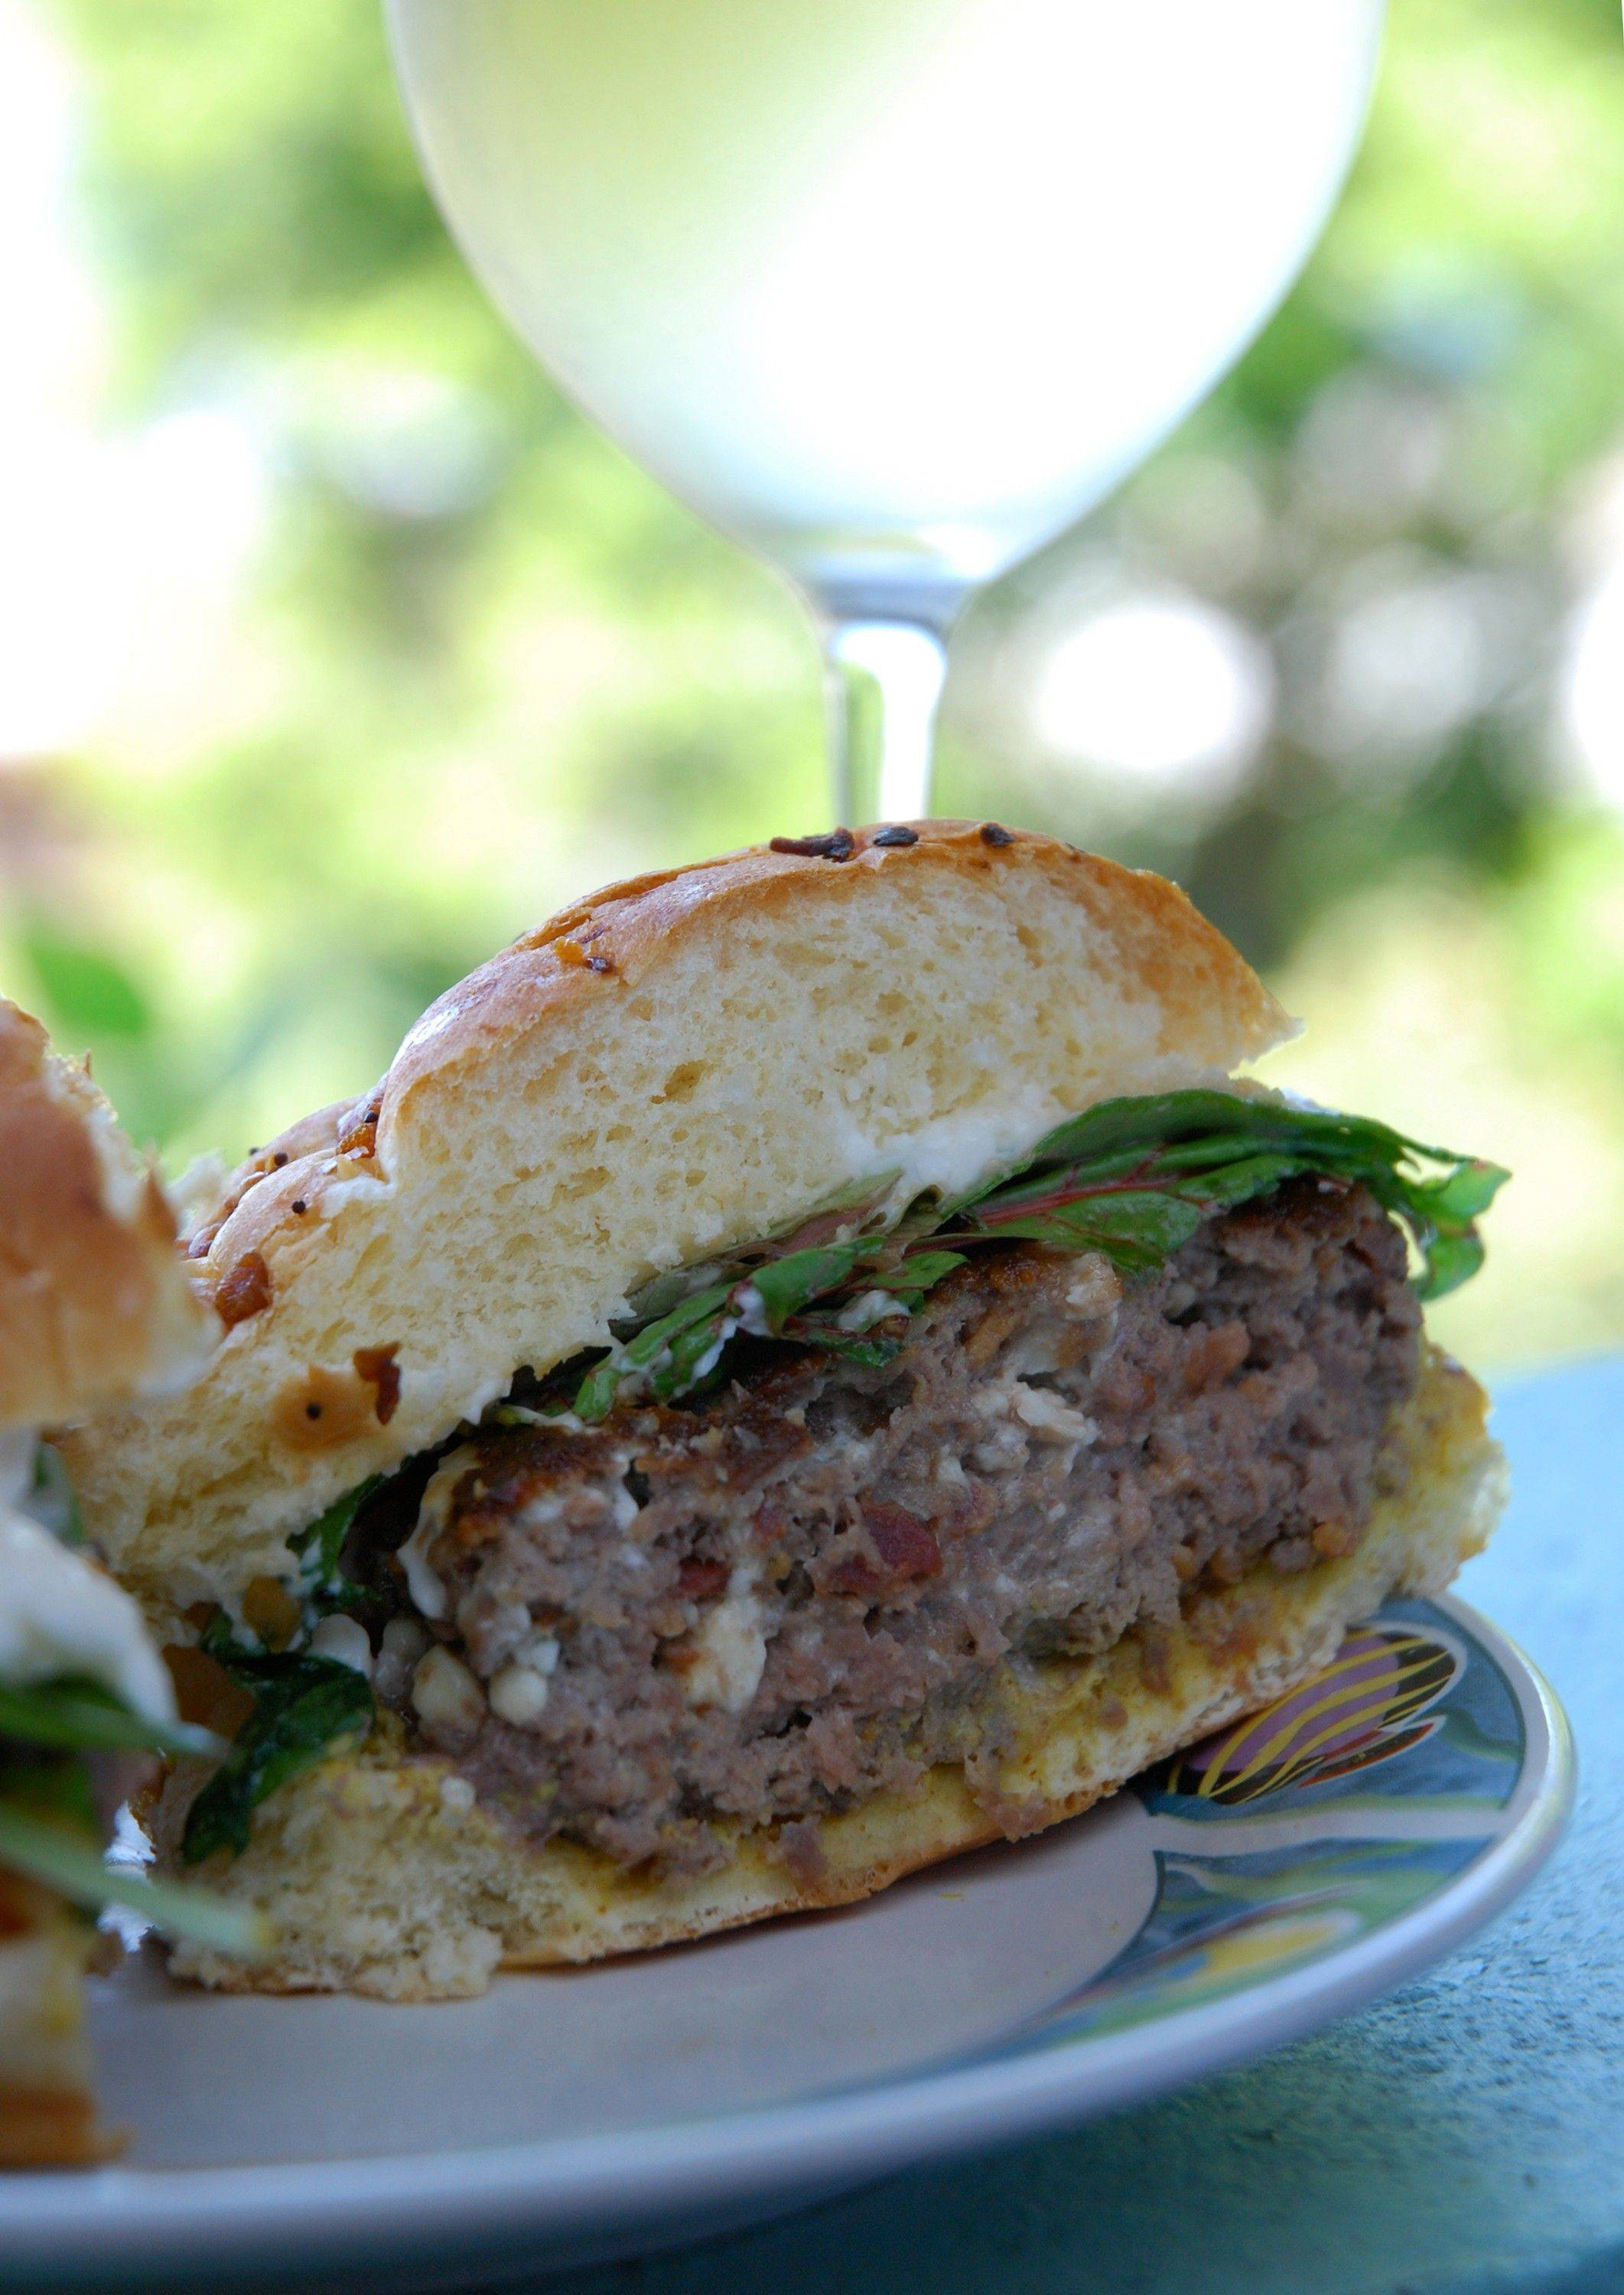 Savory blue cheese and bacon make these burgers extra special.